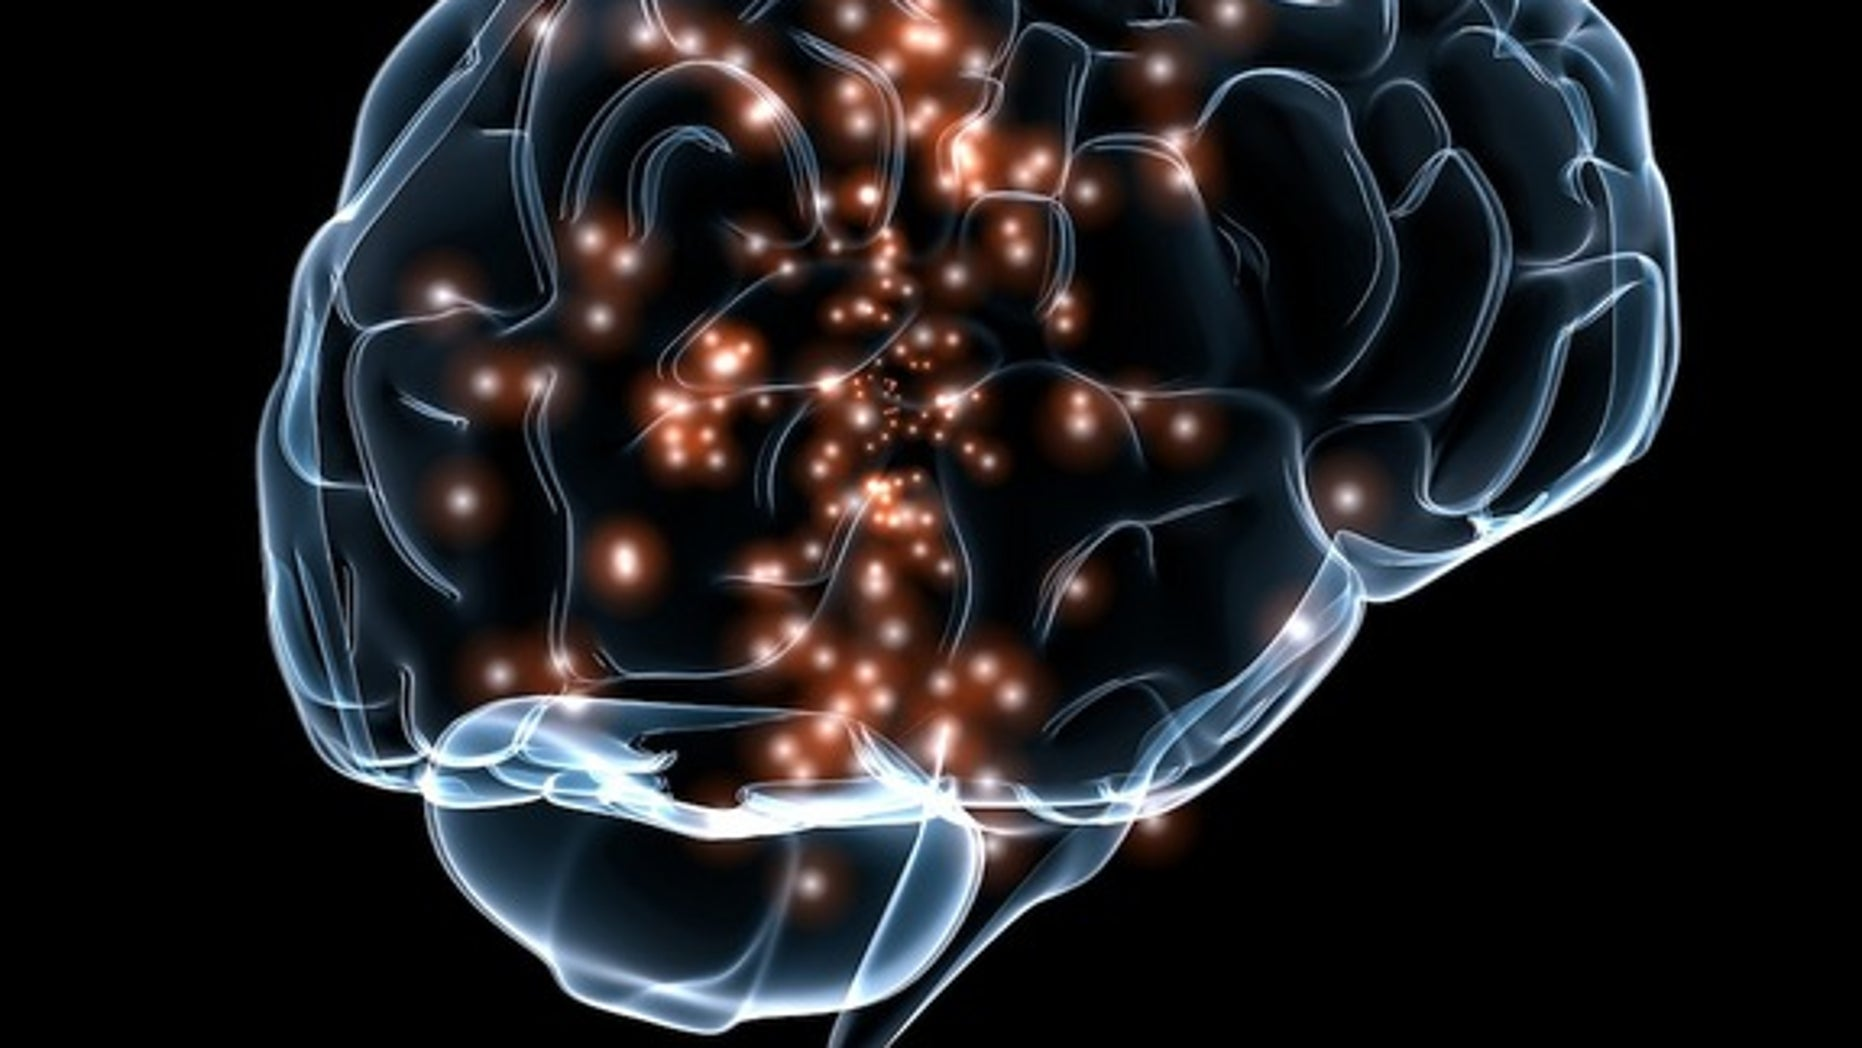 DARPA's SUBNETS program seeks new neurotechnology for analyzing neuronal activity across sub-networks of the brain to enable next-generation therapies tailored to individual patients.